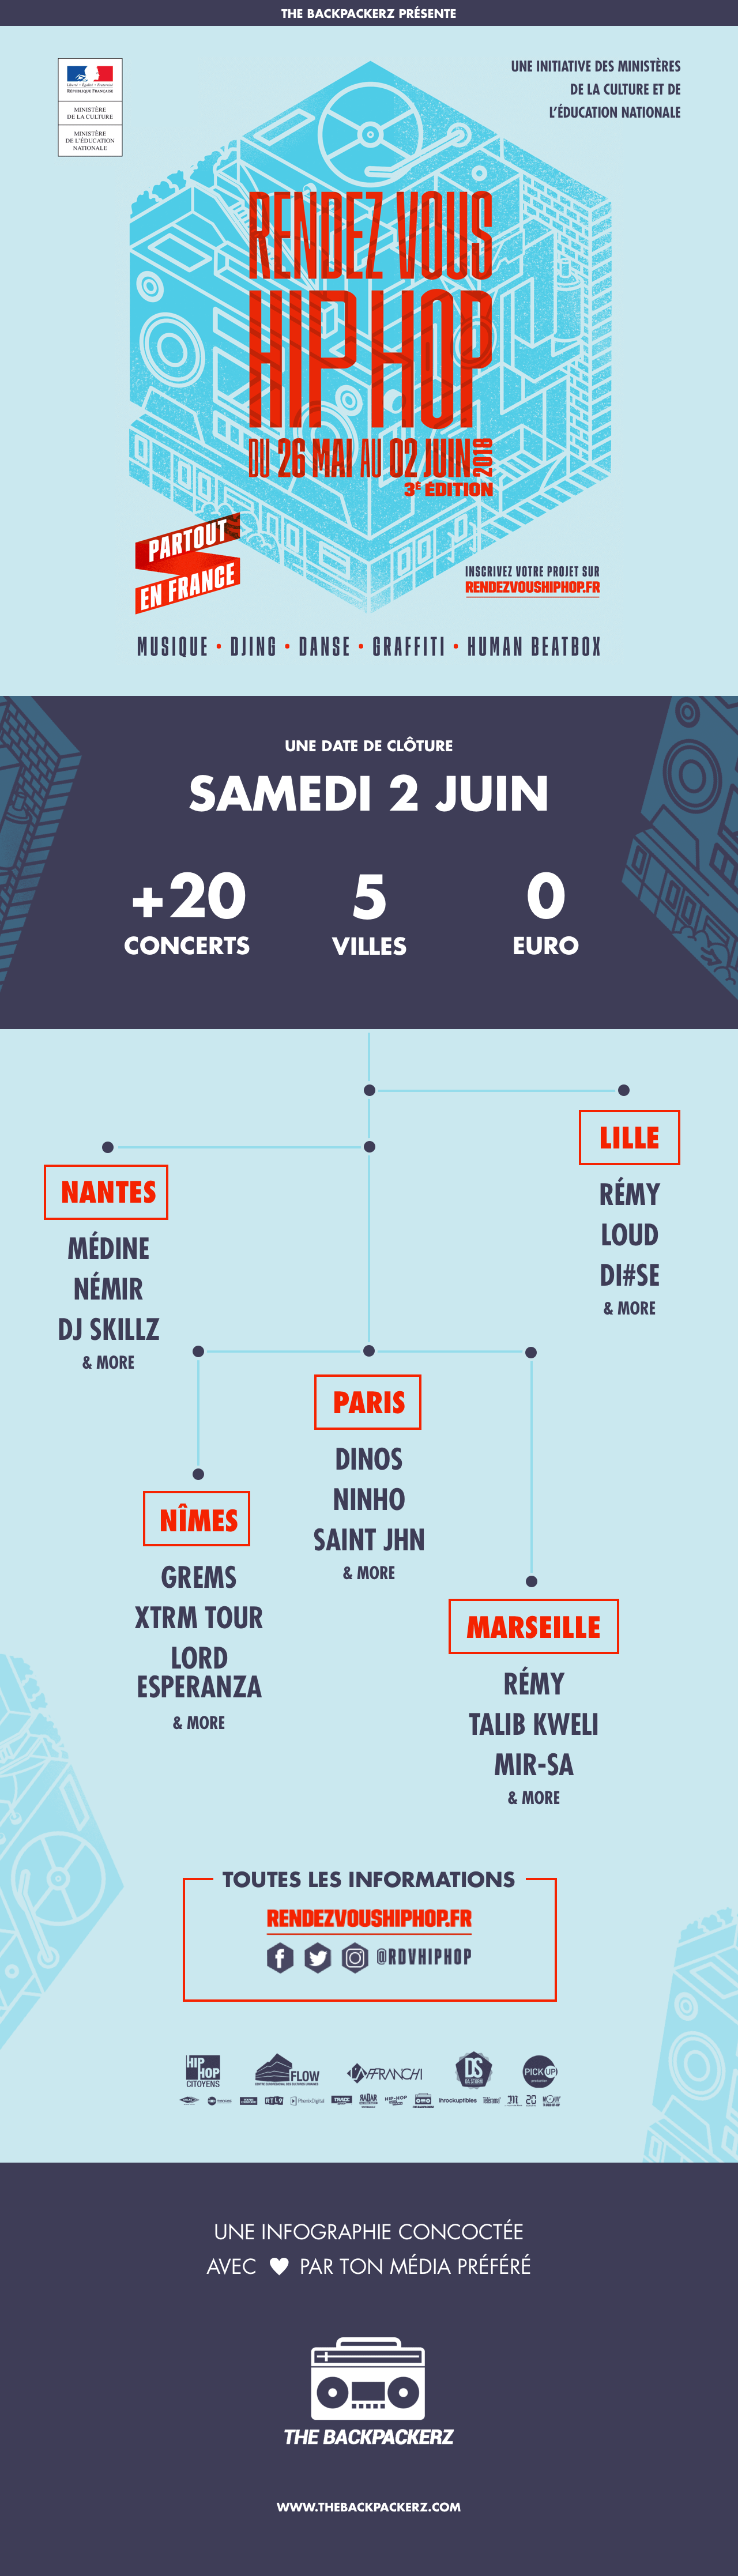 infographie-rendez-vous-hiphop-2018-thebackpackerz (1)